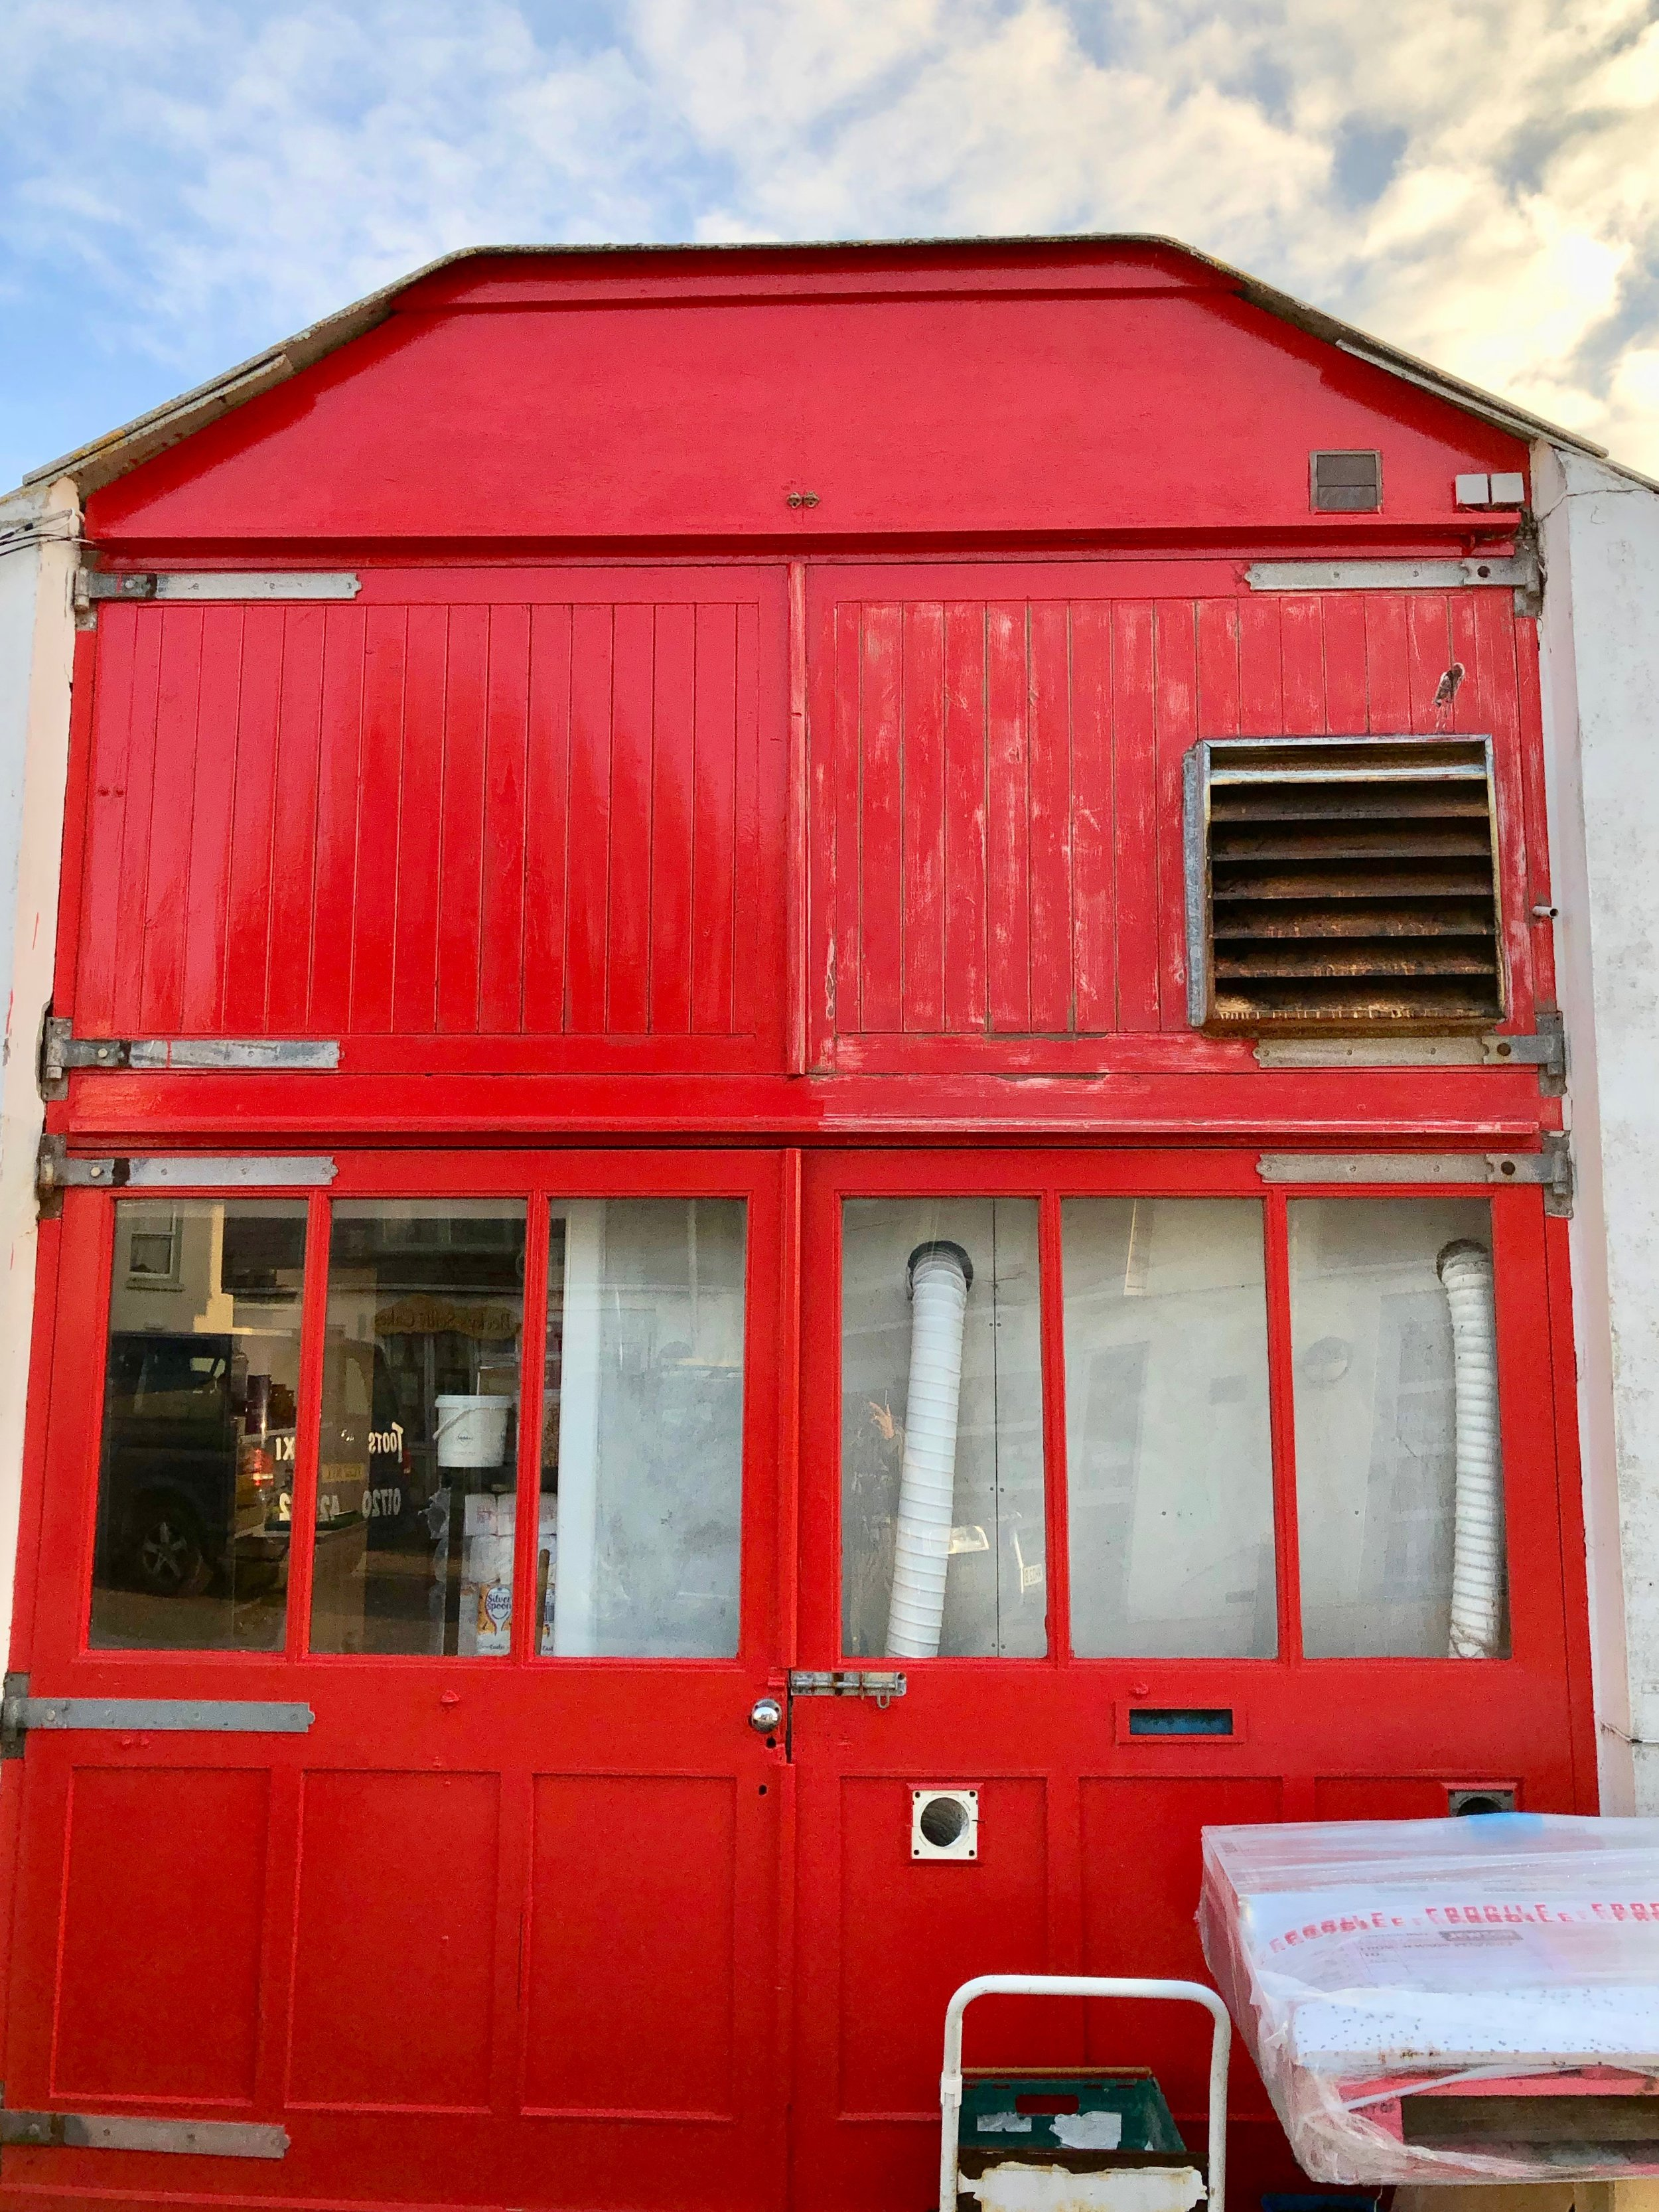 The original fire station, now Dibble & Grub Tapas Restaurant, Hugh Town, Isles of Scilly.